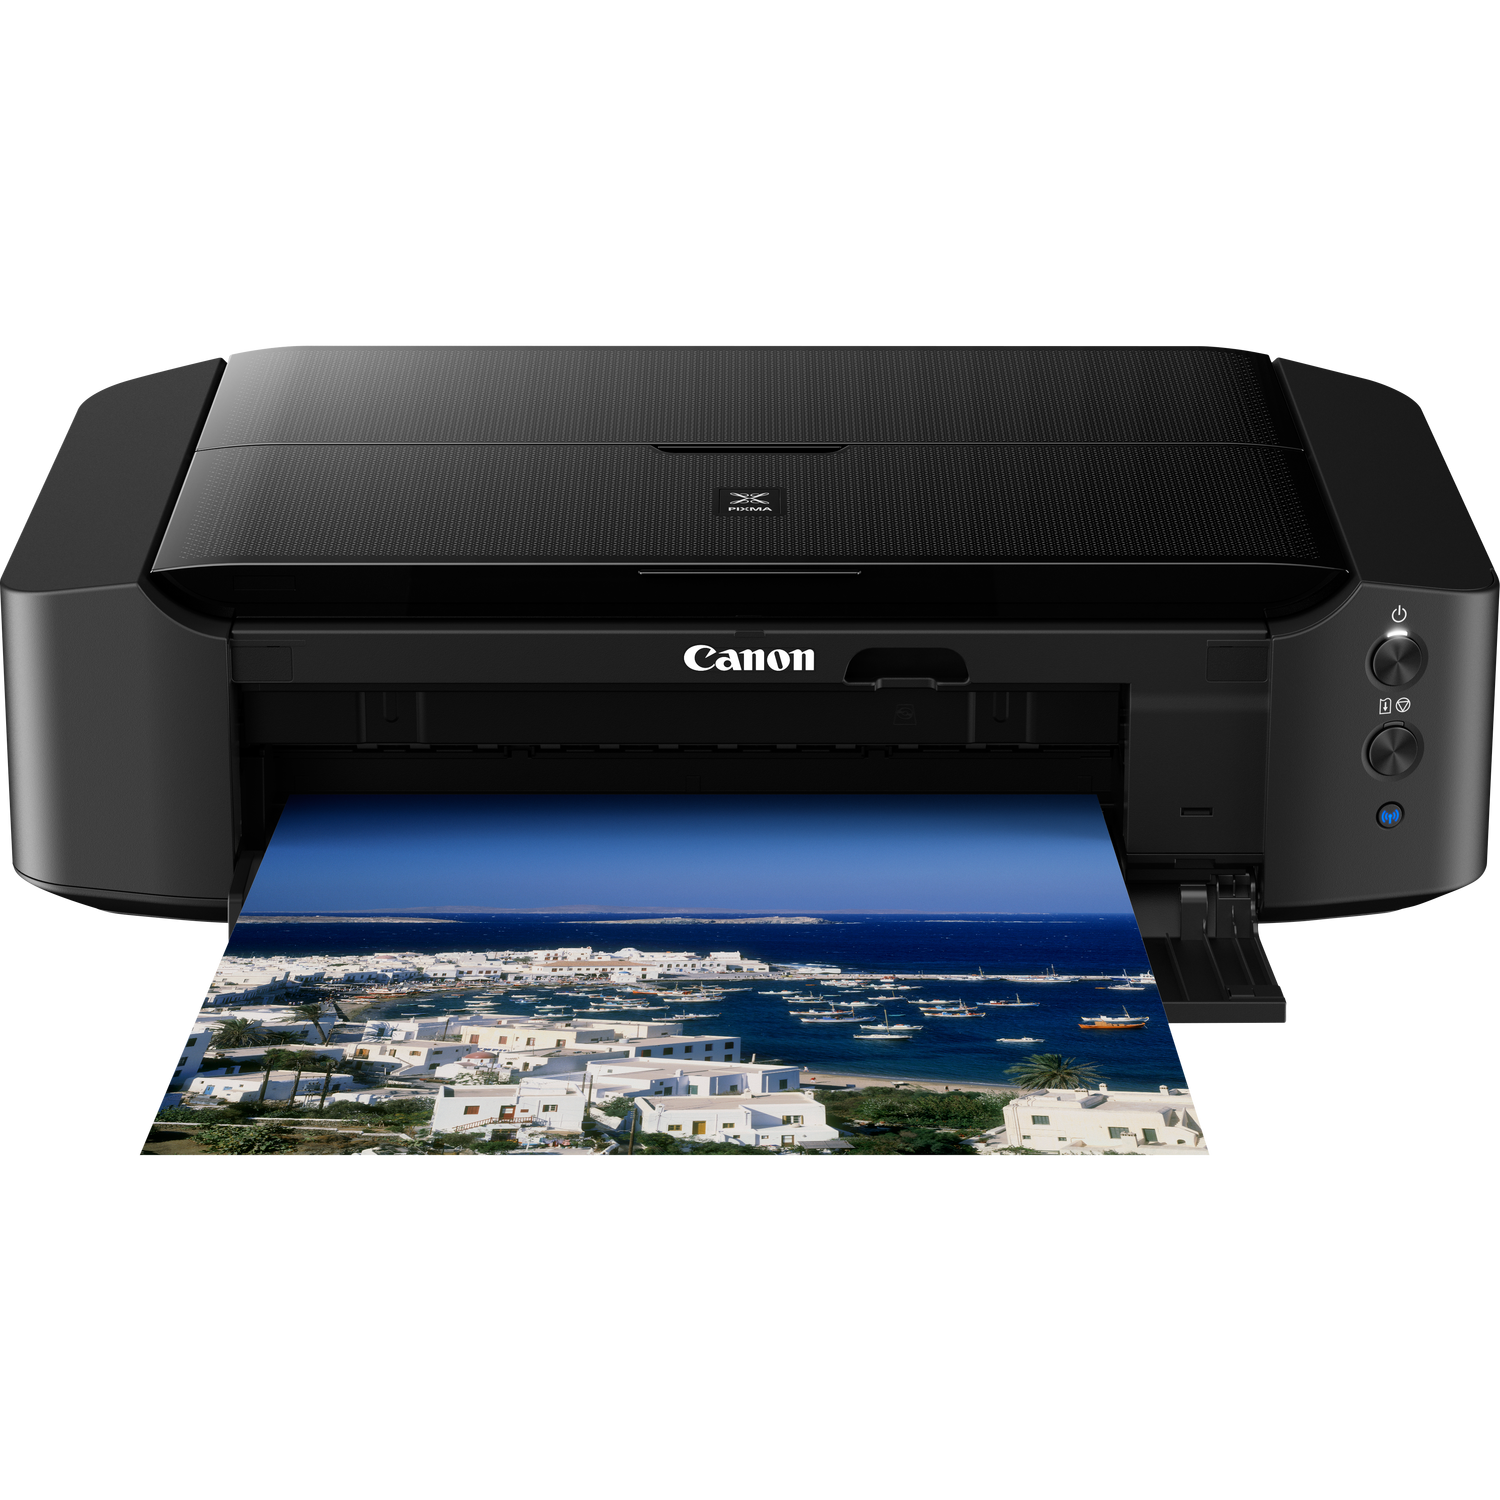 canon pixma ip8750 in imprimantes wifi canon france boutique. Black Bedroom Furniture Sets. Home Design Ideas